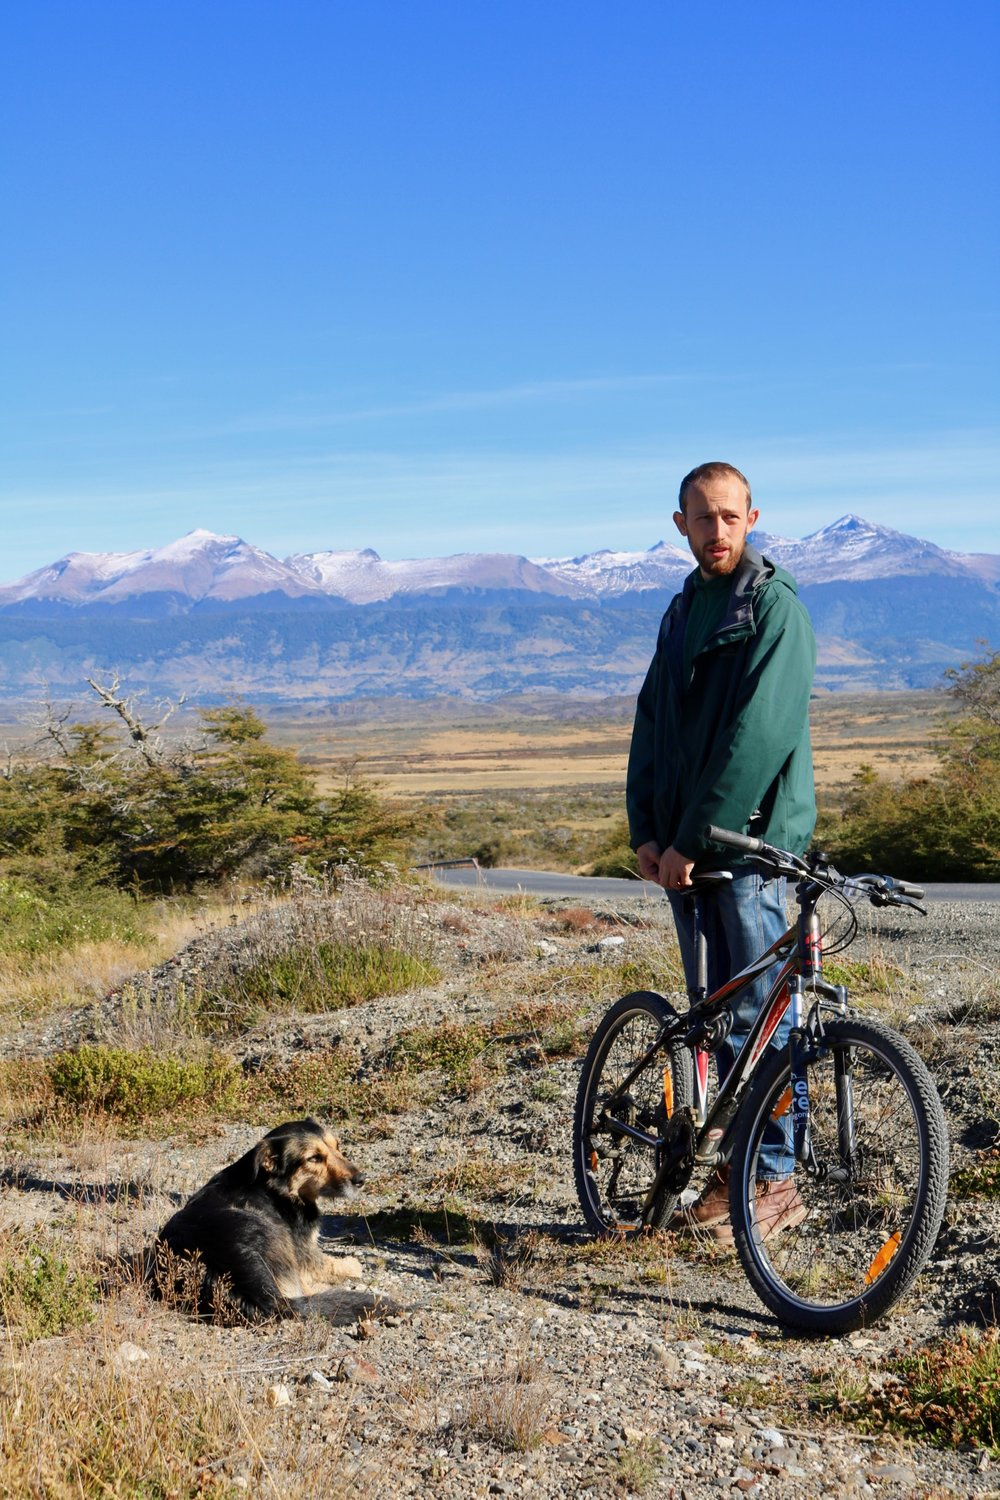 patagonia highlights - mountain biking puerto natales - 7.jpg